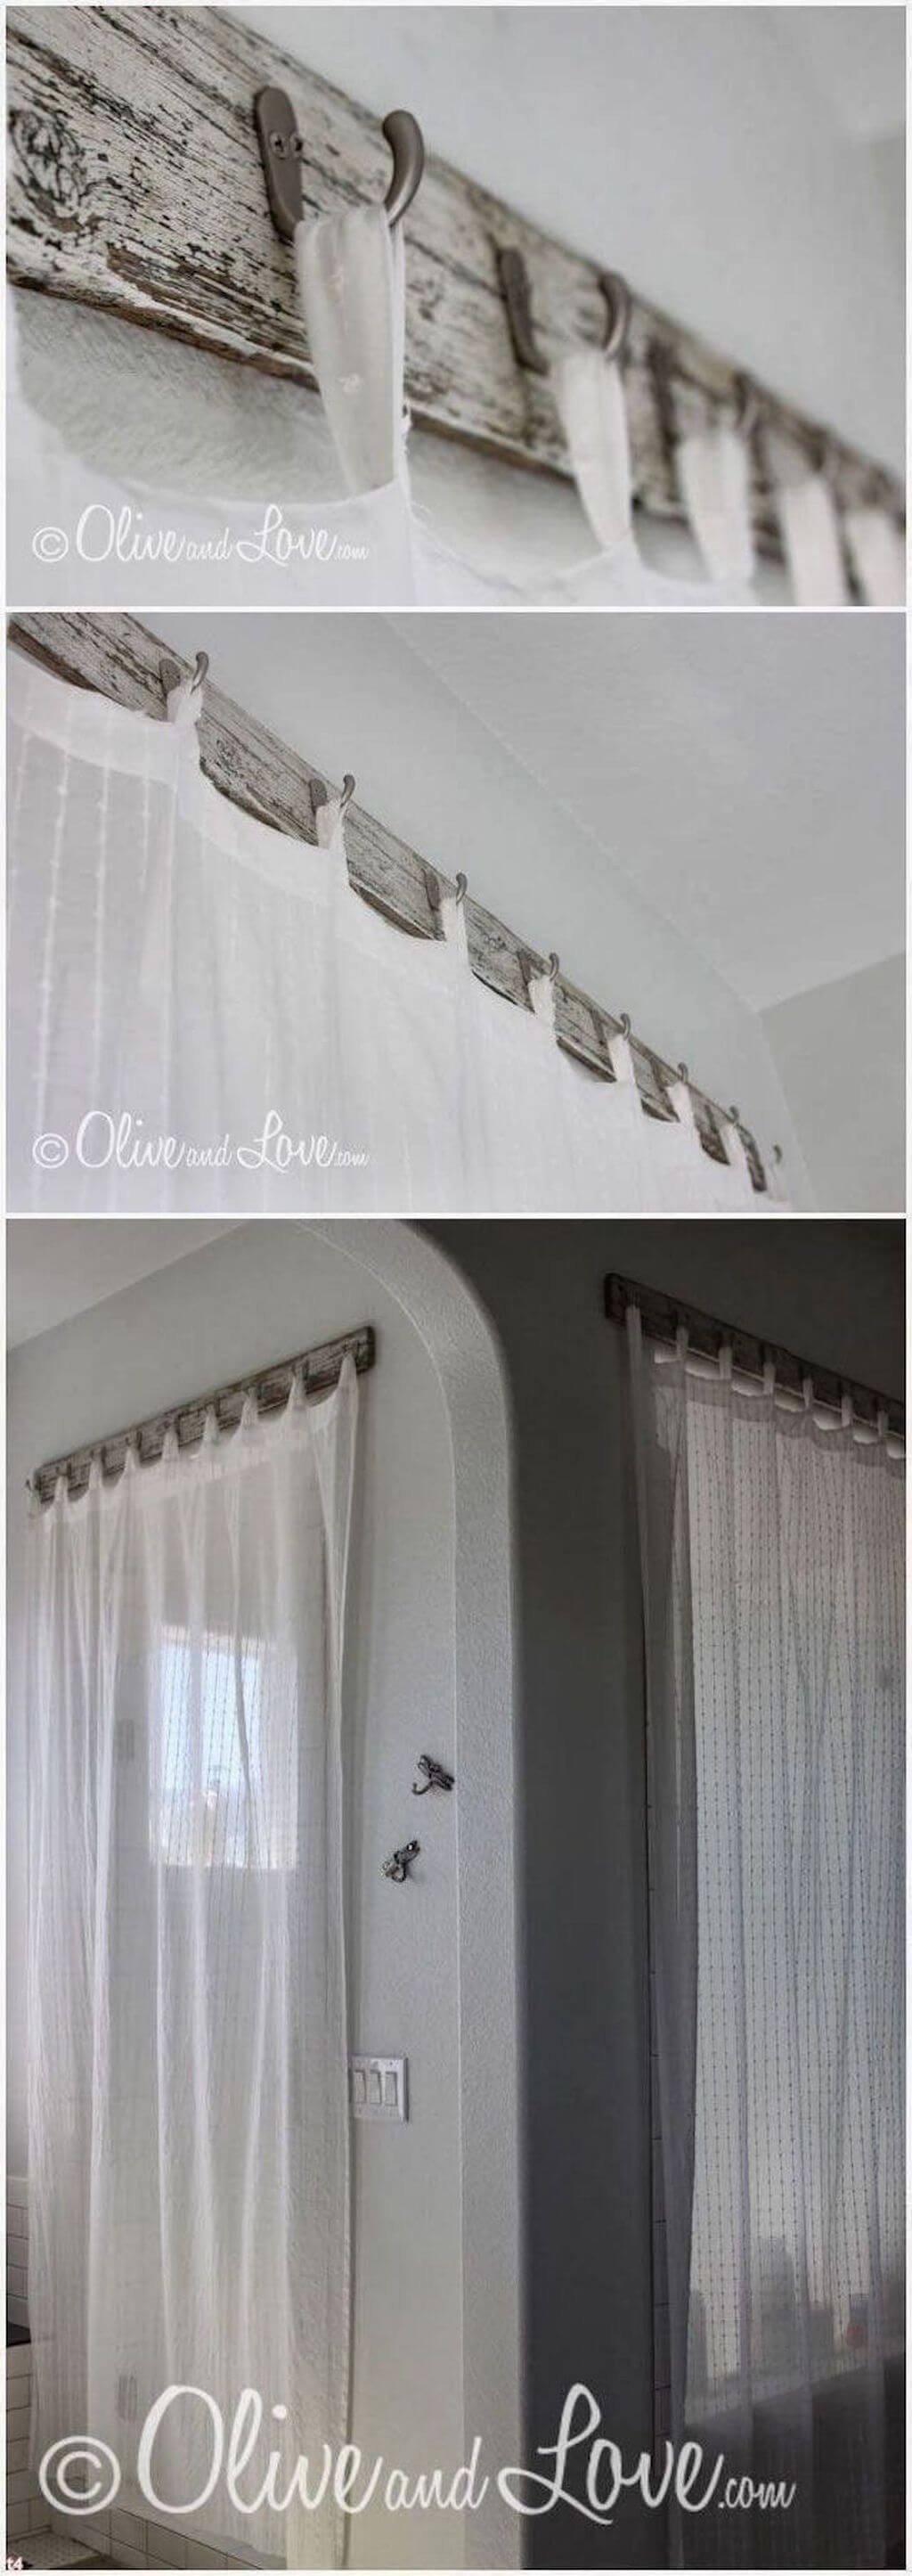 Hanging Curtains Couldn't Be Easier